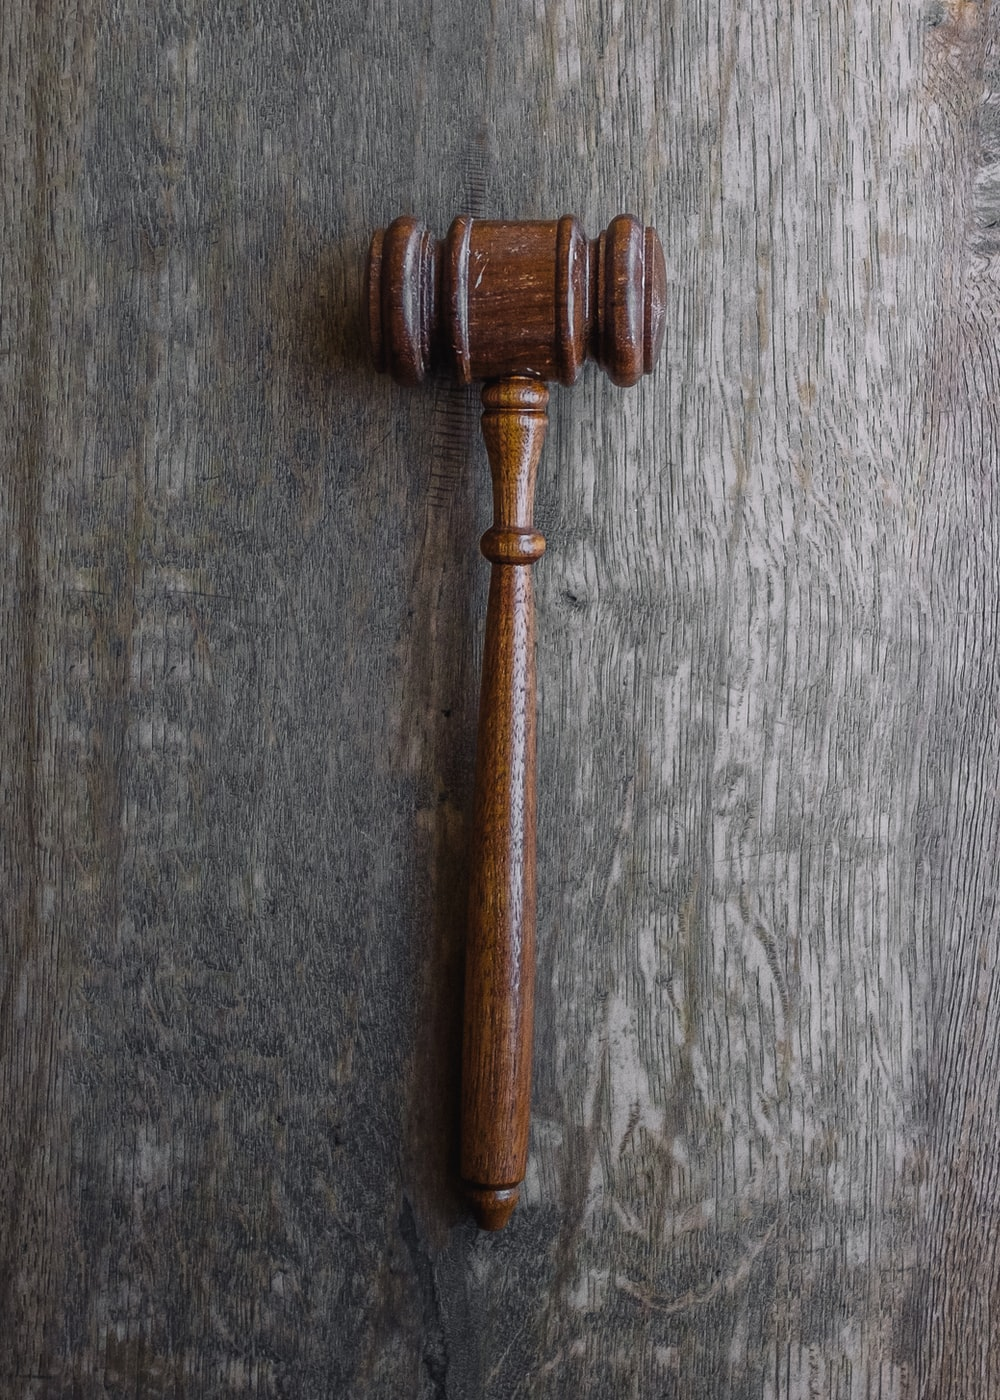 brown mallet on gray wooden surface